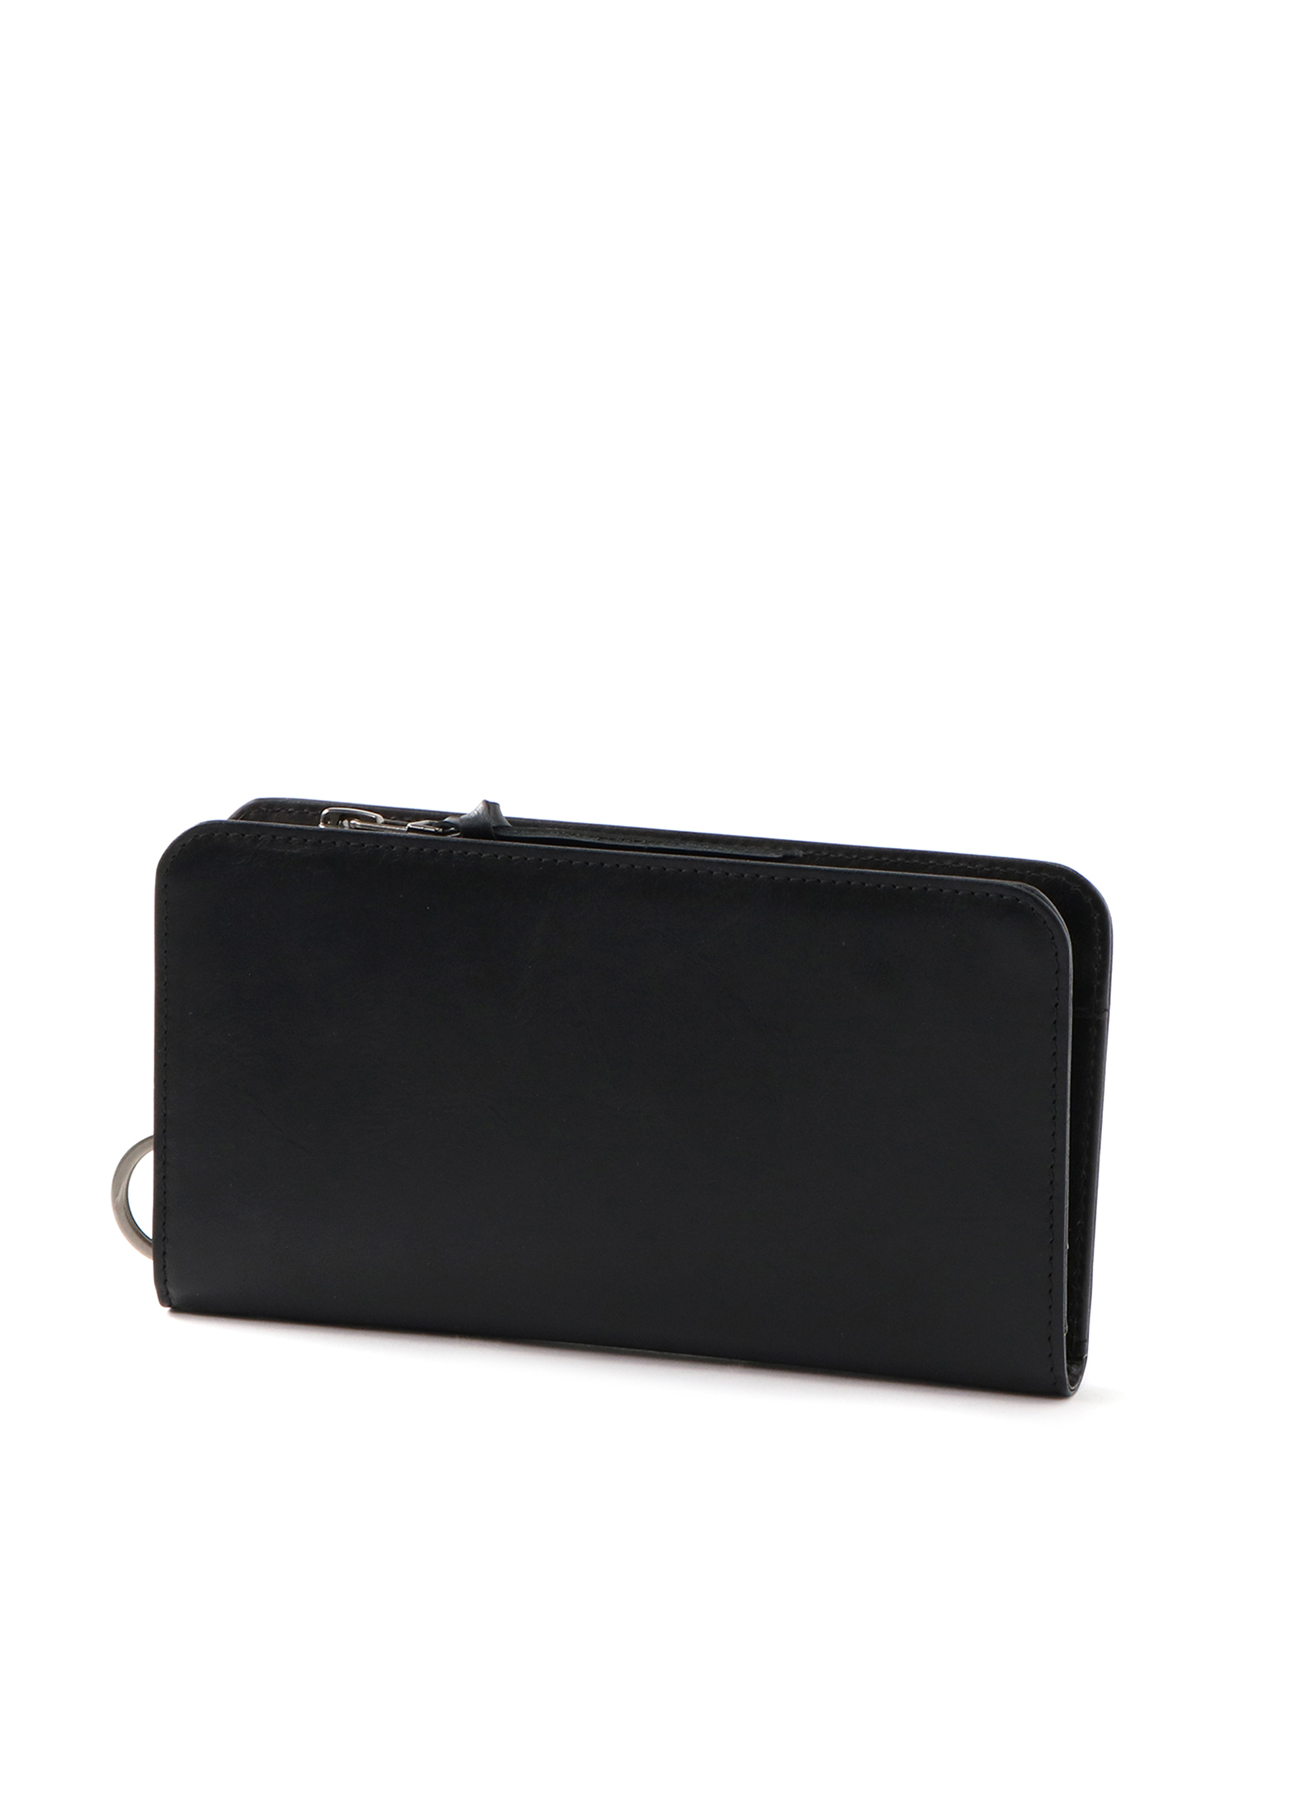 2WAY Detachable Long Wallet